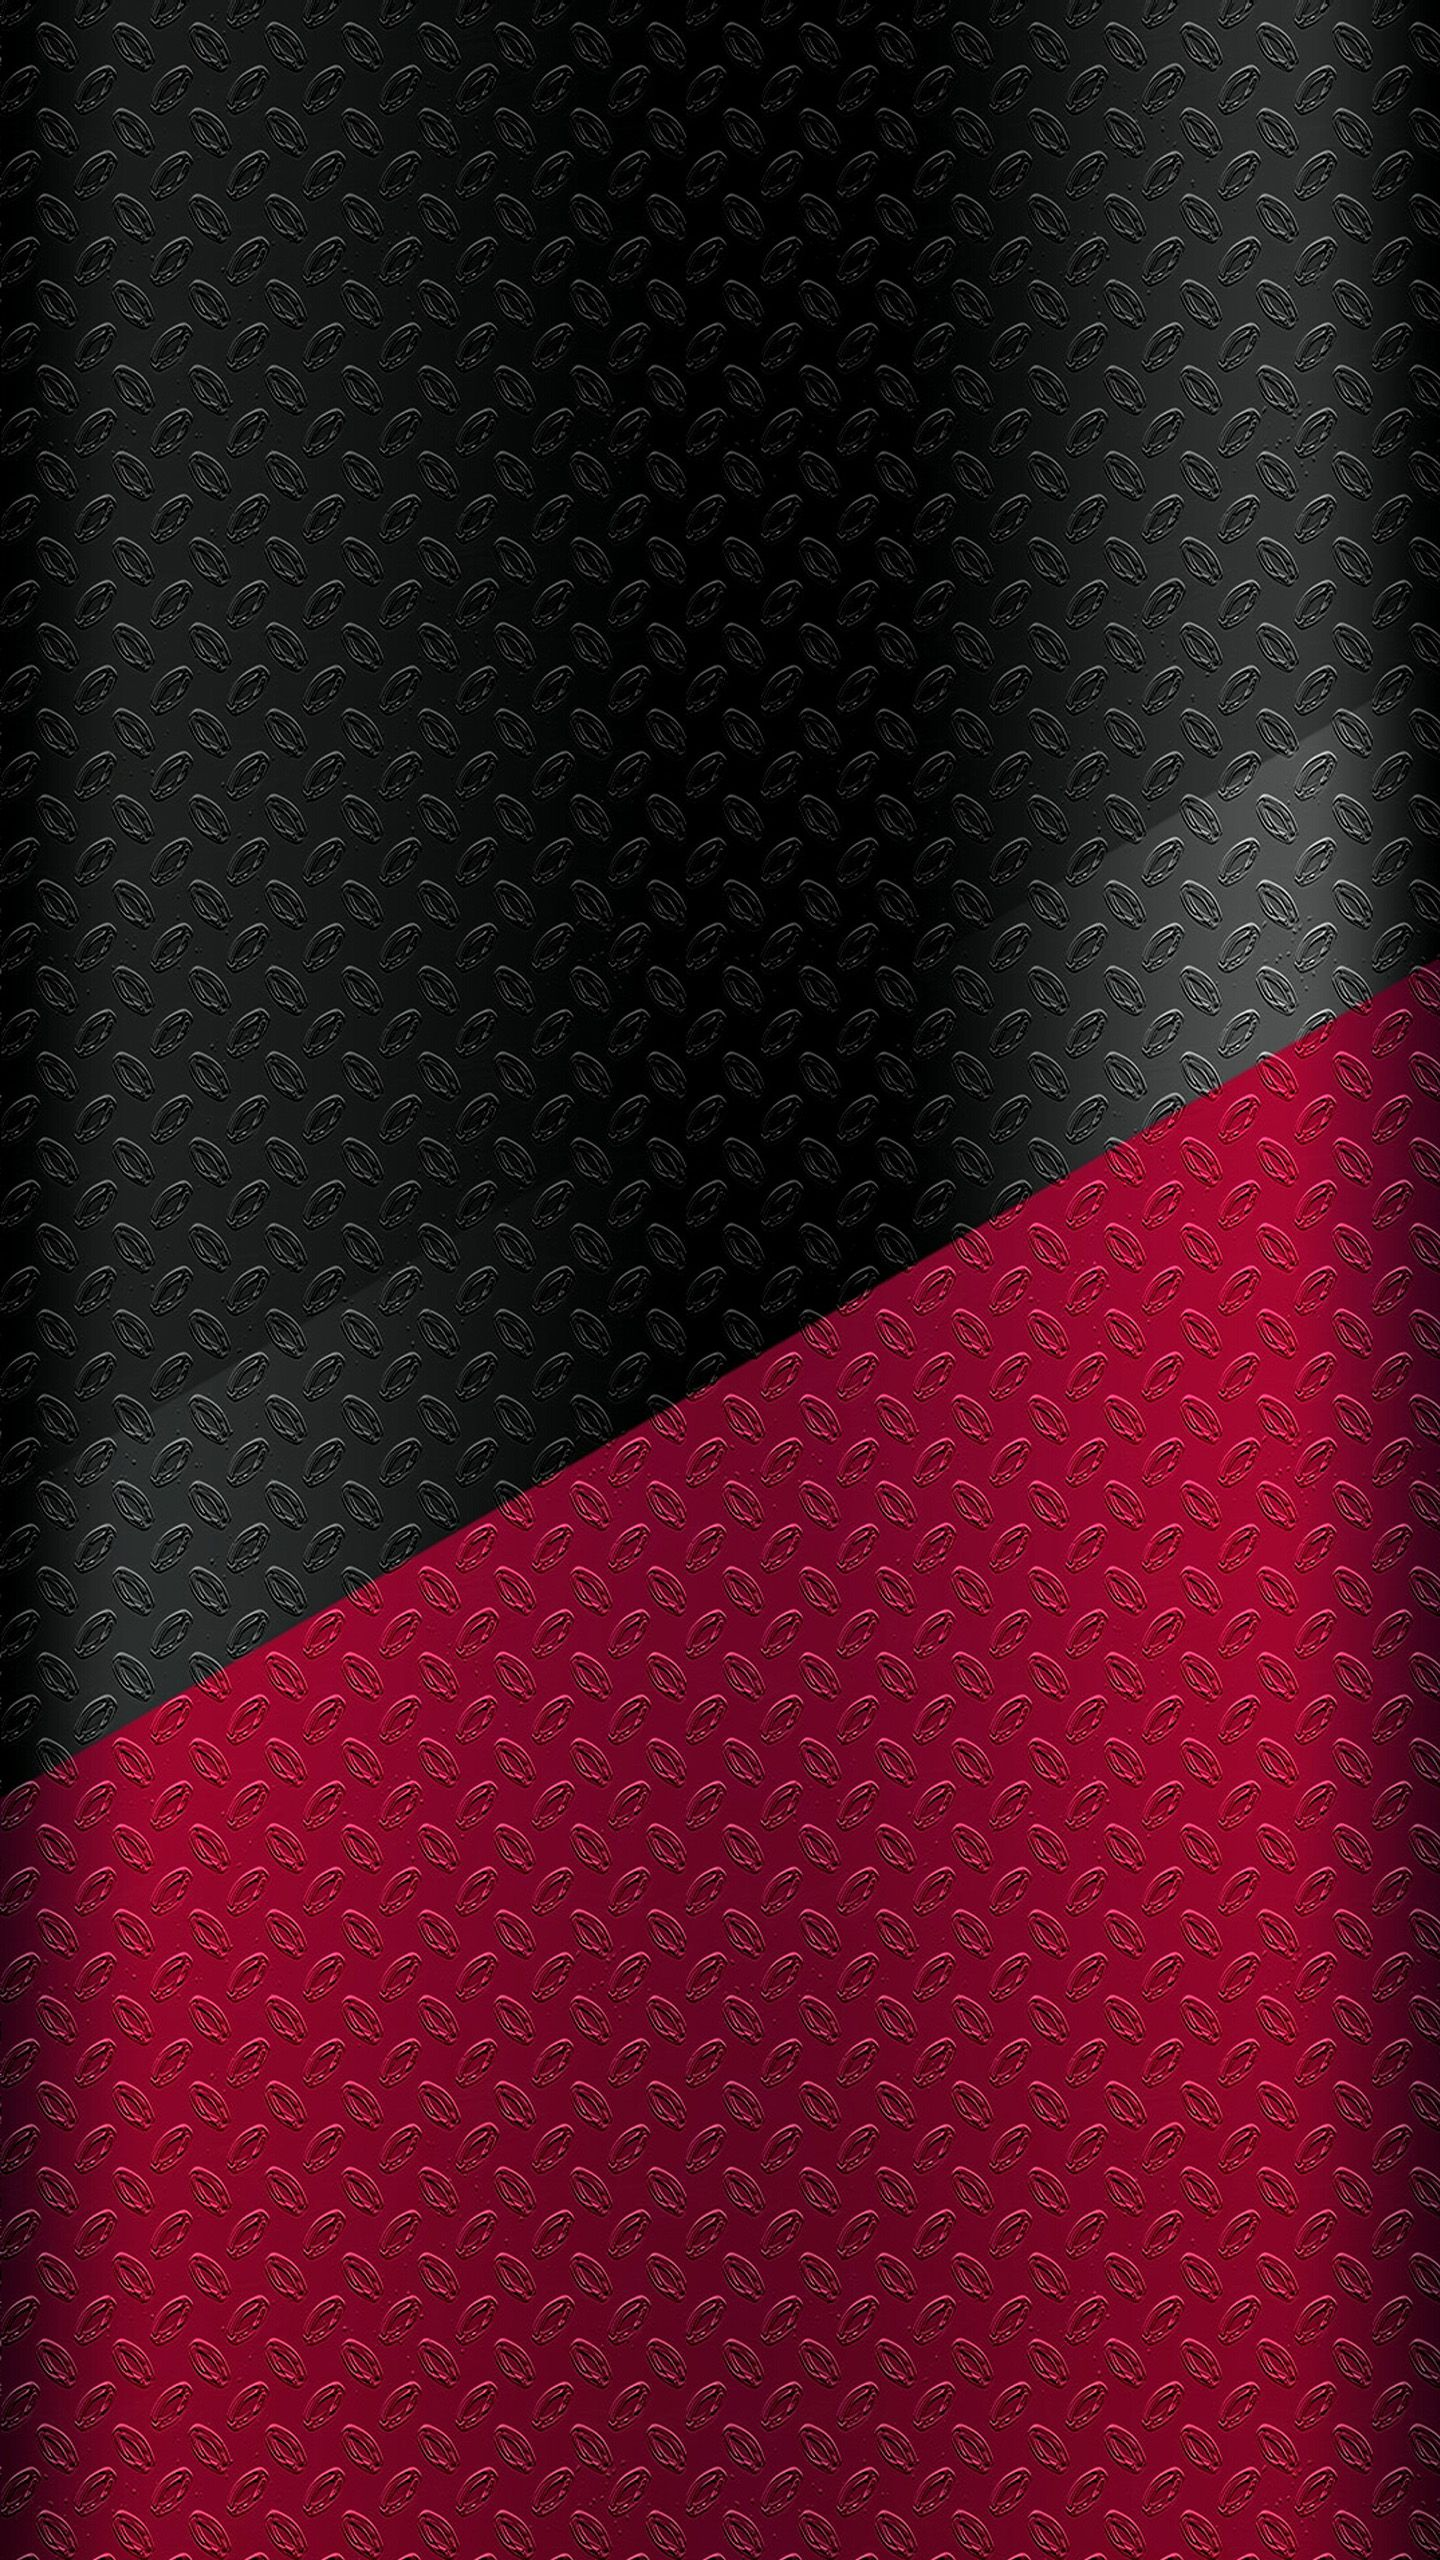 Dark S7 Edge Wallpaper 03 Black And Red Hd Wallpapers Wallpapers Download High Resolution Wallpapers Red And Black Wallpaper Metal Texture Wallpaper Edge